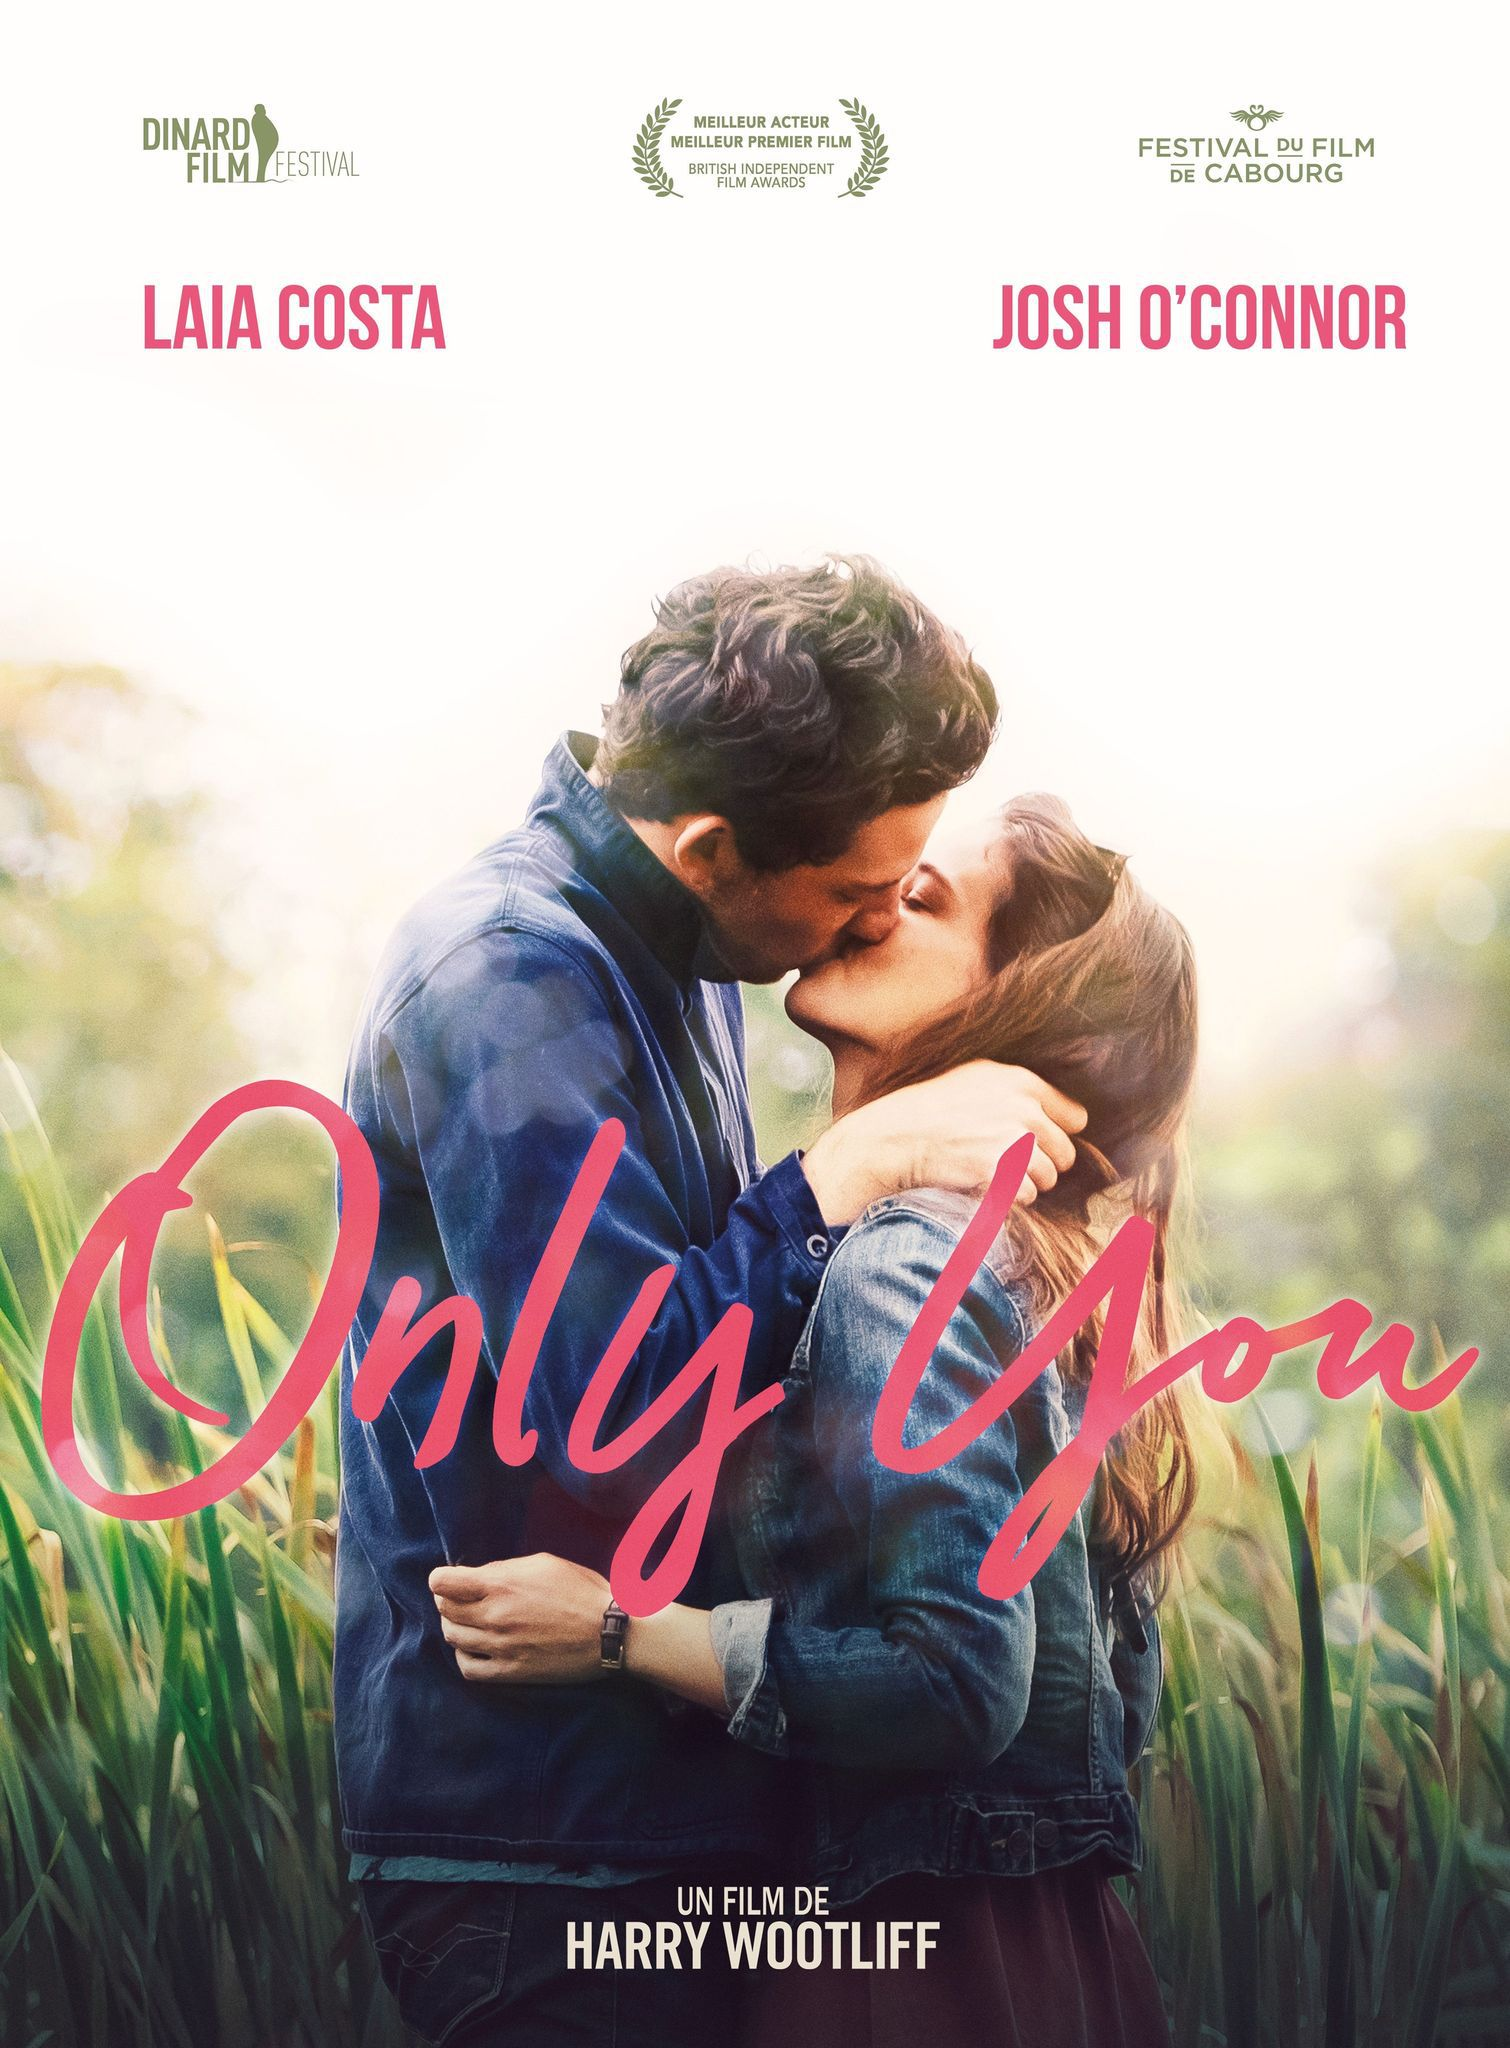 Voir Film Only You - Film (2020) streaming VF gratuit complet